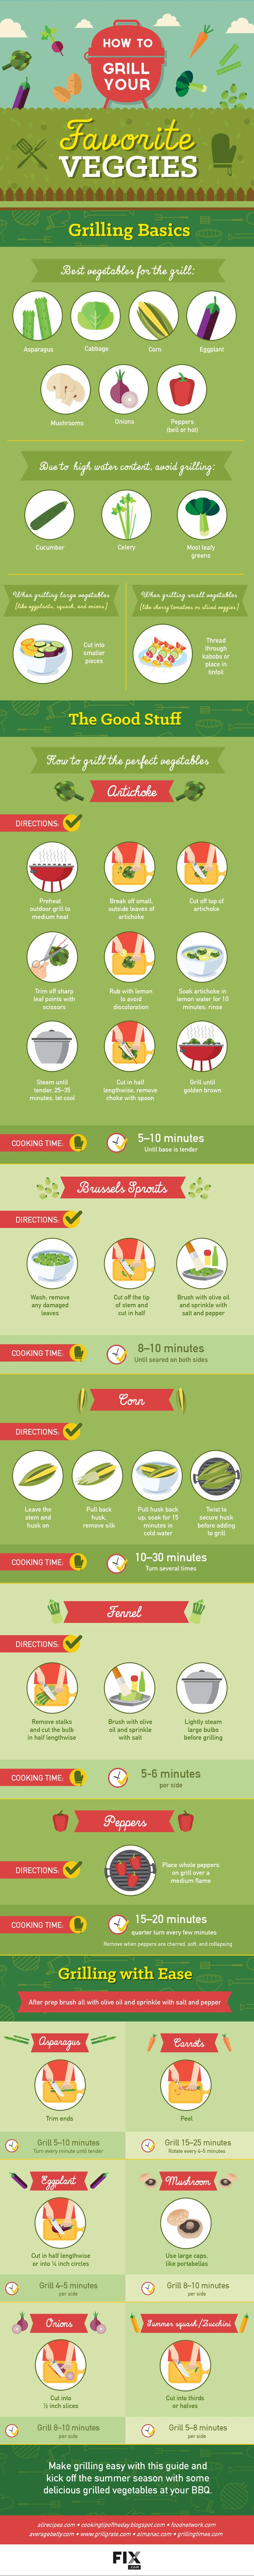 Infographic: Everything You Need To Know About Grilling Your Favorite Vegetables #FWx